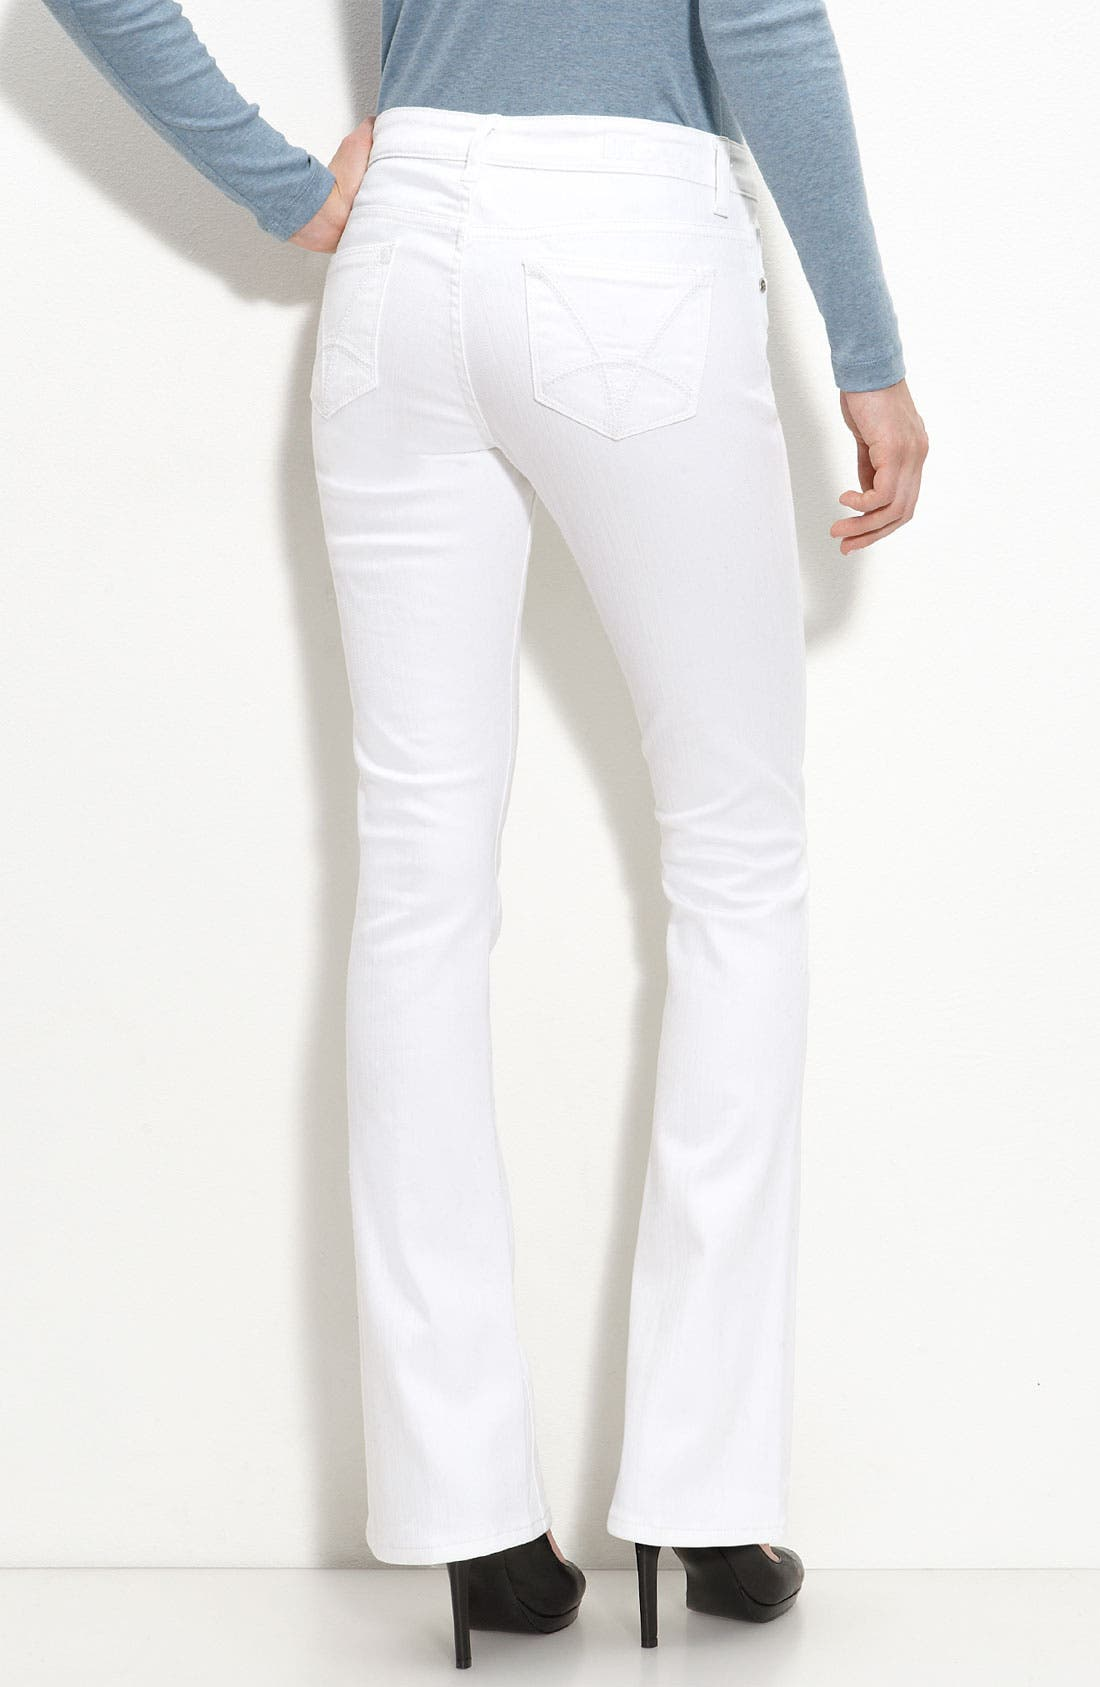 Main Image - KUT from the Kloth Baby Bootcut Jeans (White Wash)